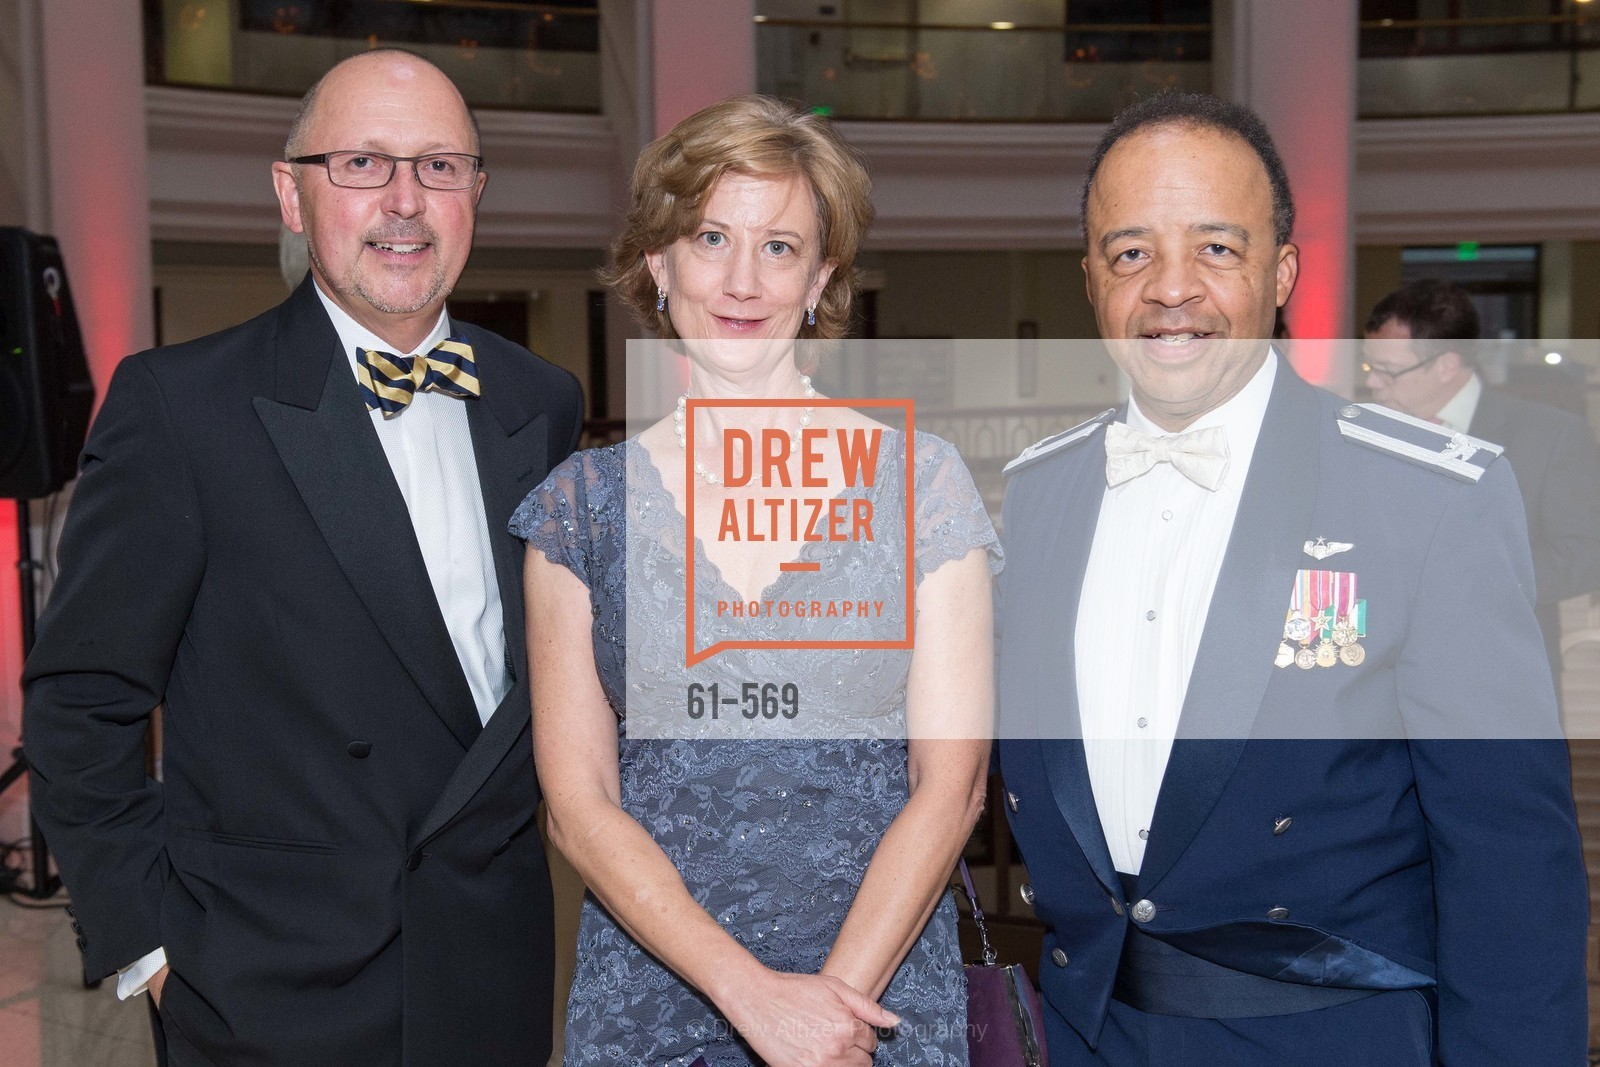 Alexander Zwissler, Cheryl Bruner, Rtd.Col Bill Bruner, CHABOT Science Center STARLIGHT GALA, US, September 20th, 2014,Drew Altizer, Drew Altizer Photography, full-service agency, private events, San Francisco photographer, photographer california